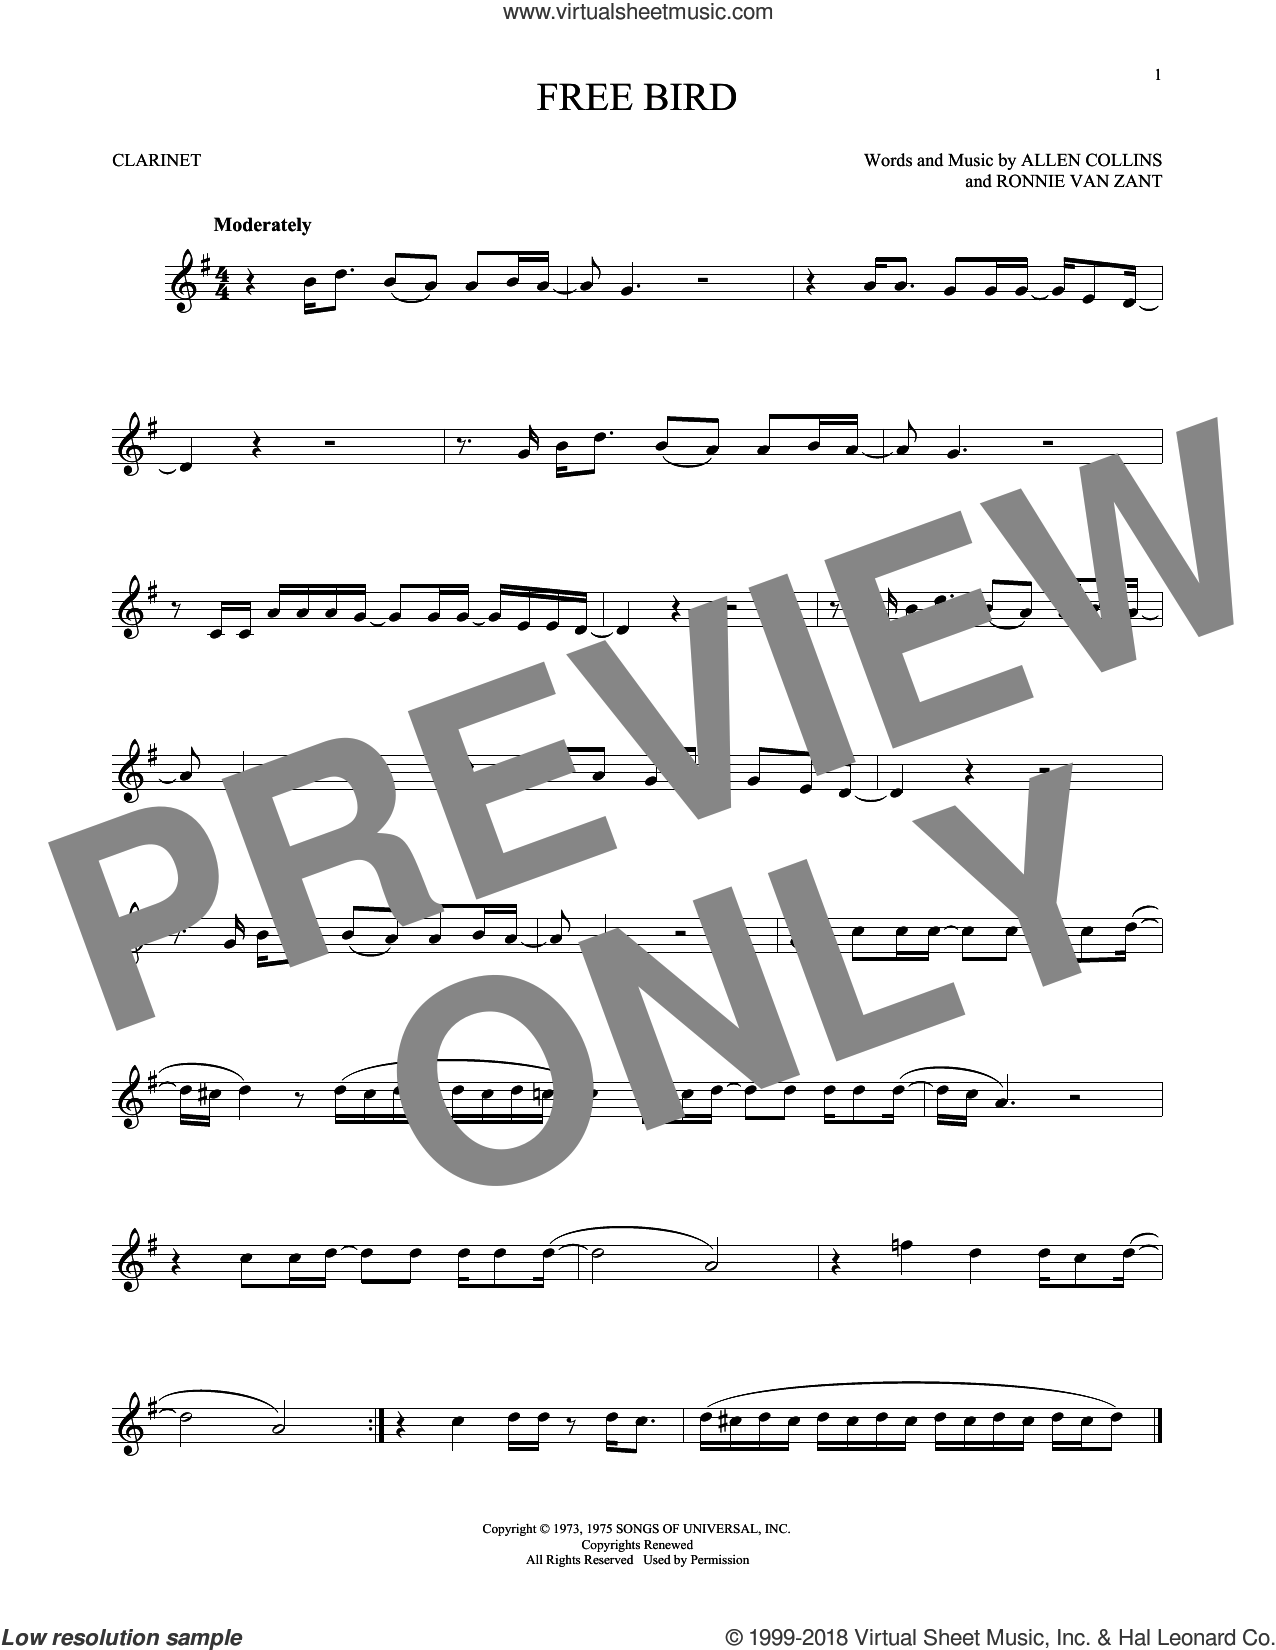 Free Bird sheet music for clarinet solo by Lynyrd Skynyrd, Allen Collins and Ronnie Van Zant, intermediate skill level